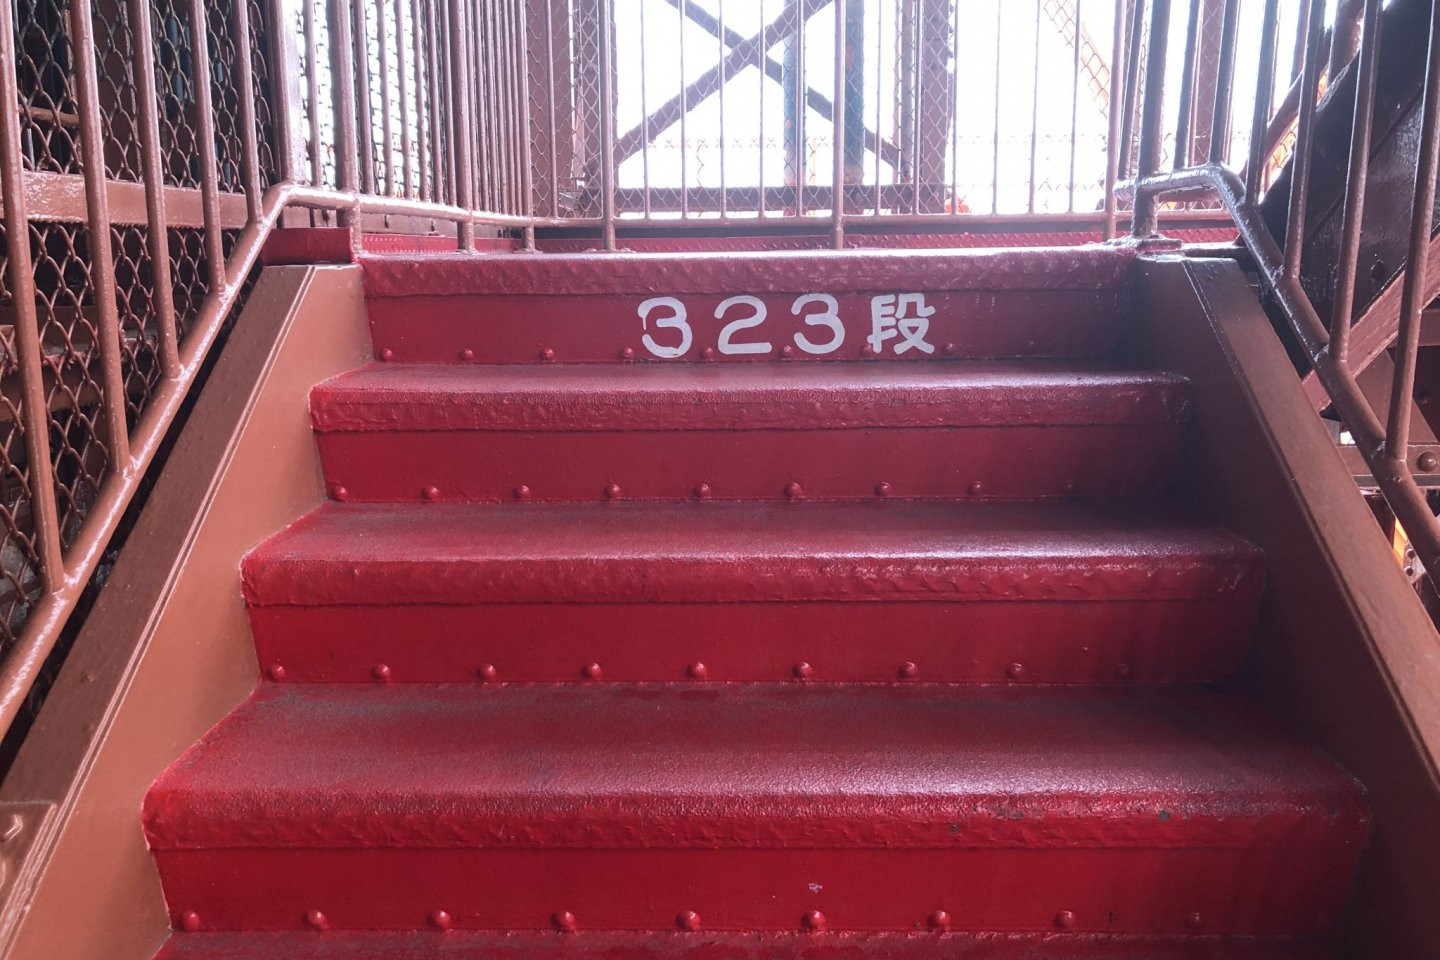 Tokyo Tower: 323rd step